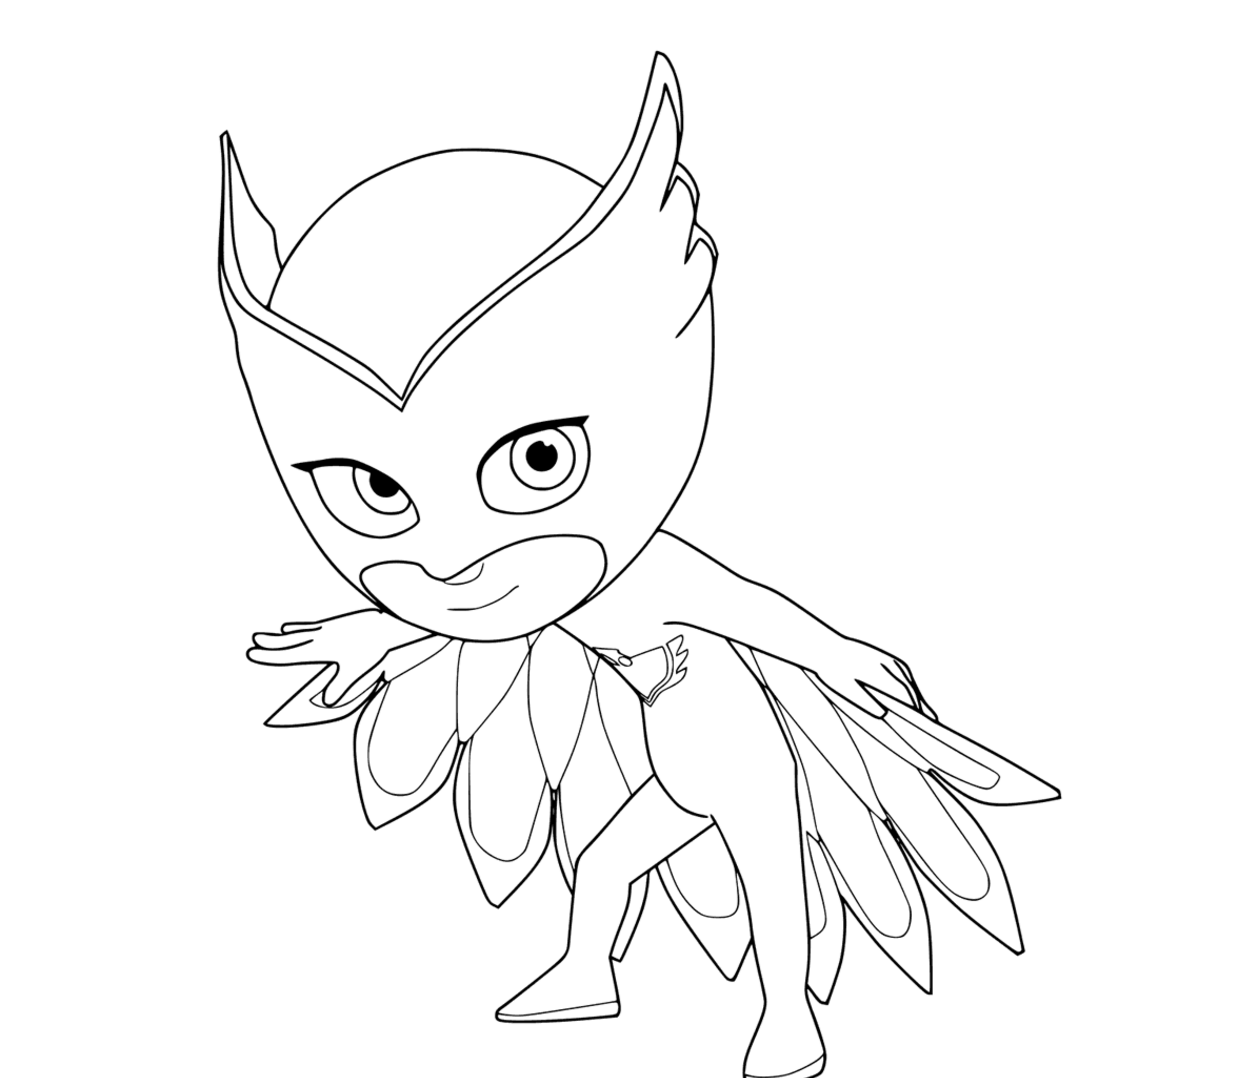 coloring masks pj masks coloring pages to download and print for free masks coloring